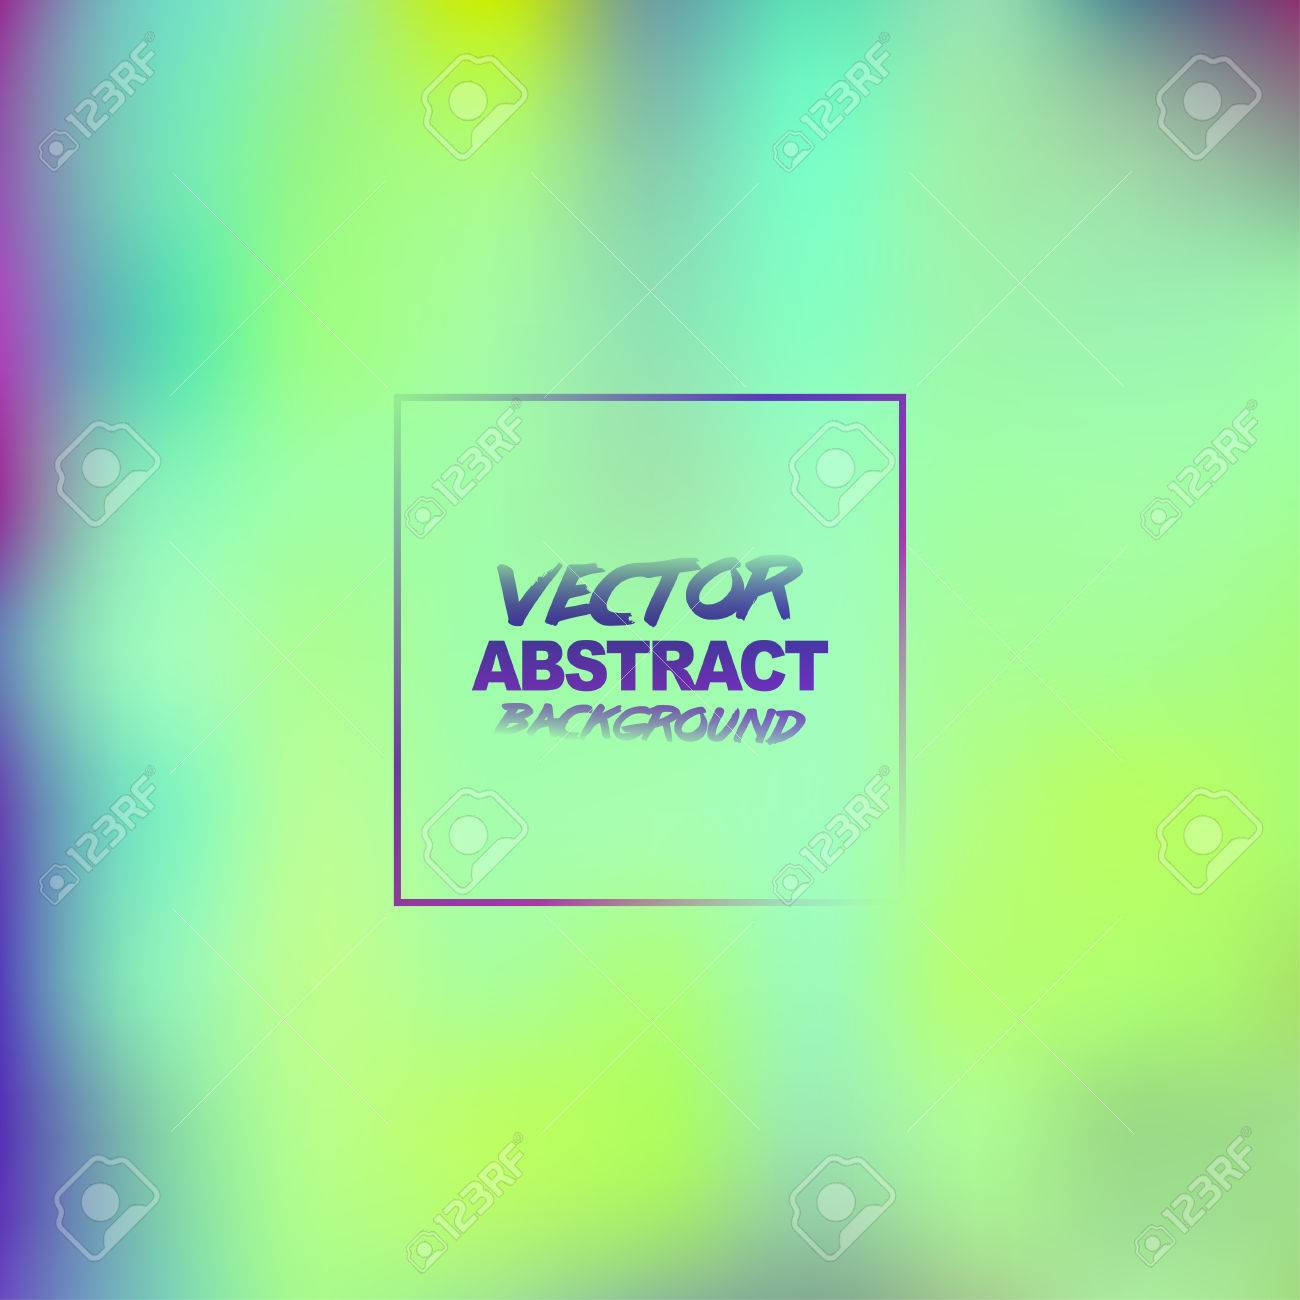 Colorful Smooth Gradient Color Background Wallpaper Inspired By Suicide Squad Abstract Colored Toxic Blurred